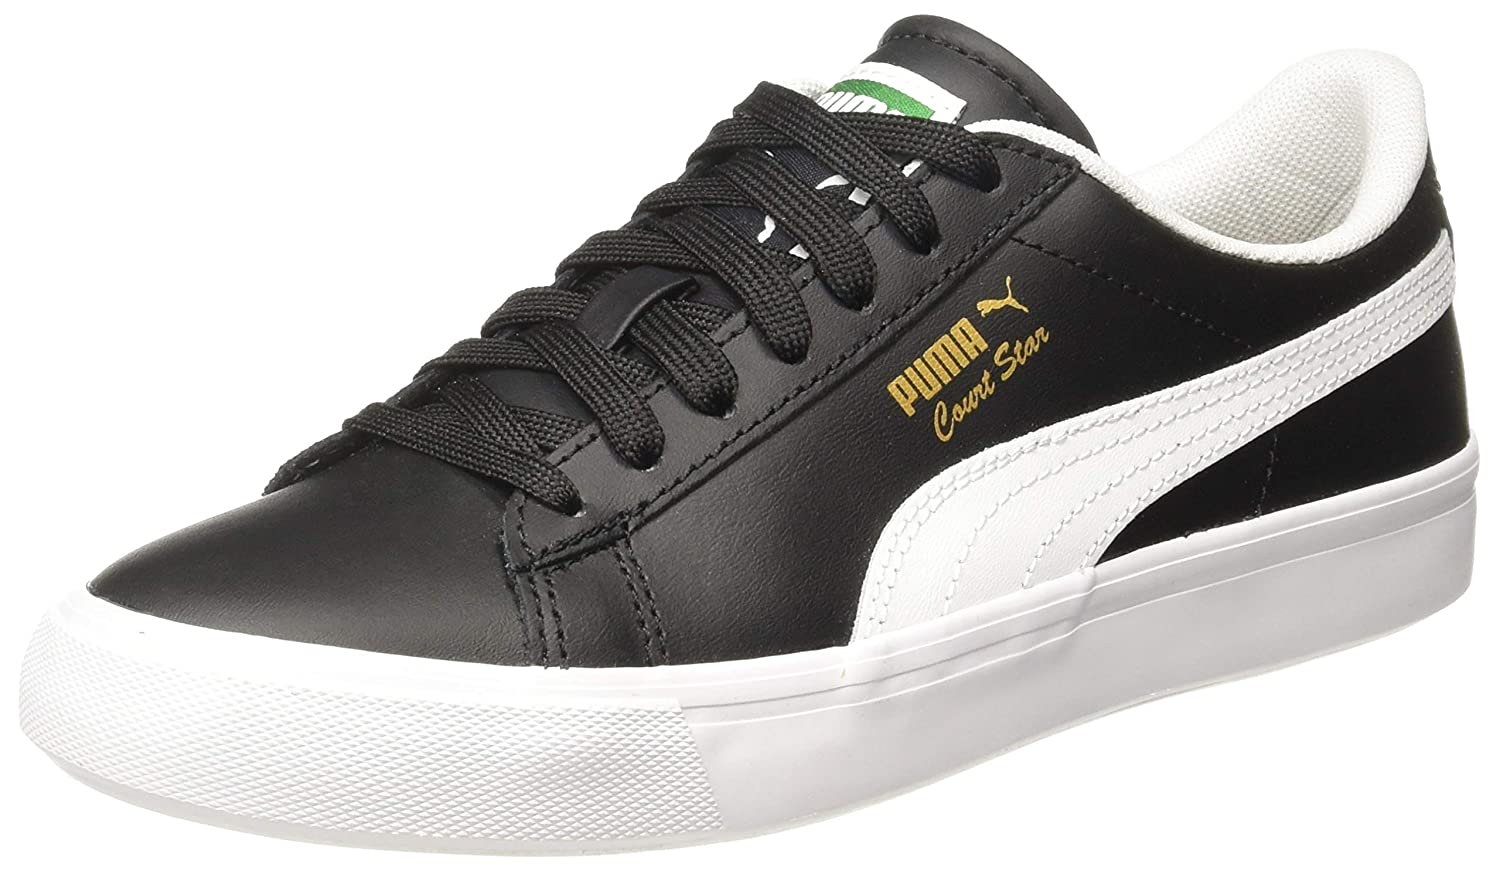 Puma Unisex's Court Star Vulc FS Leather Sneakers